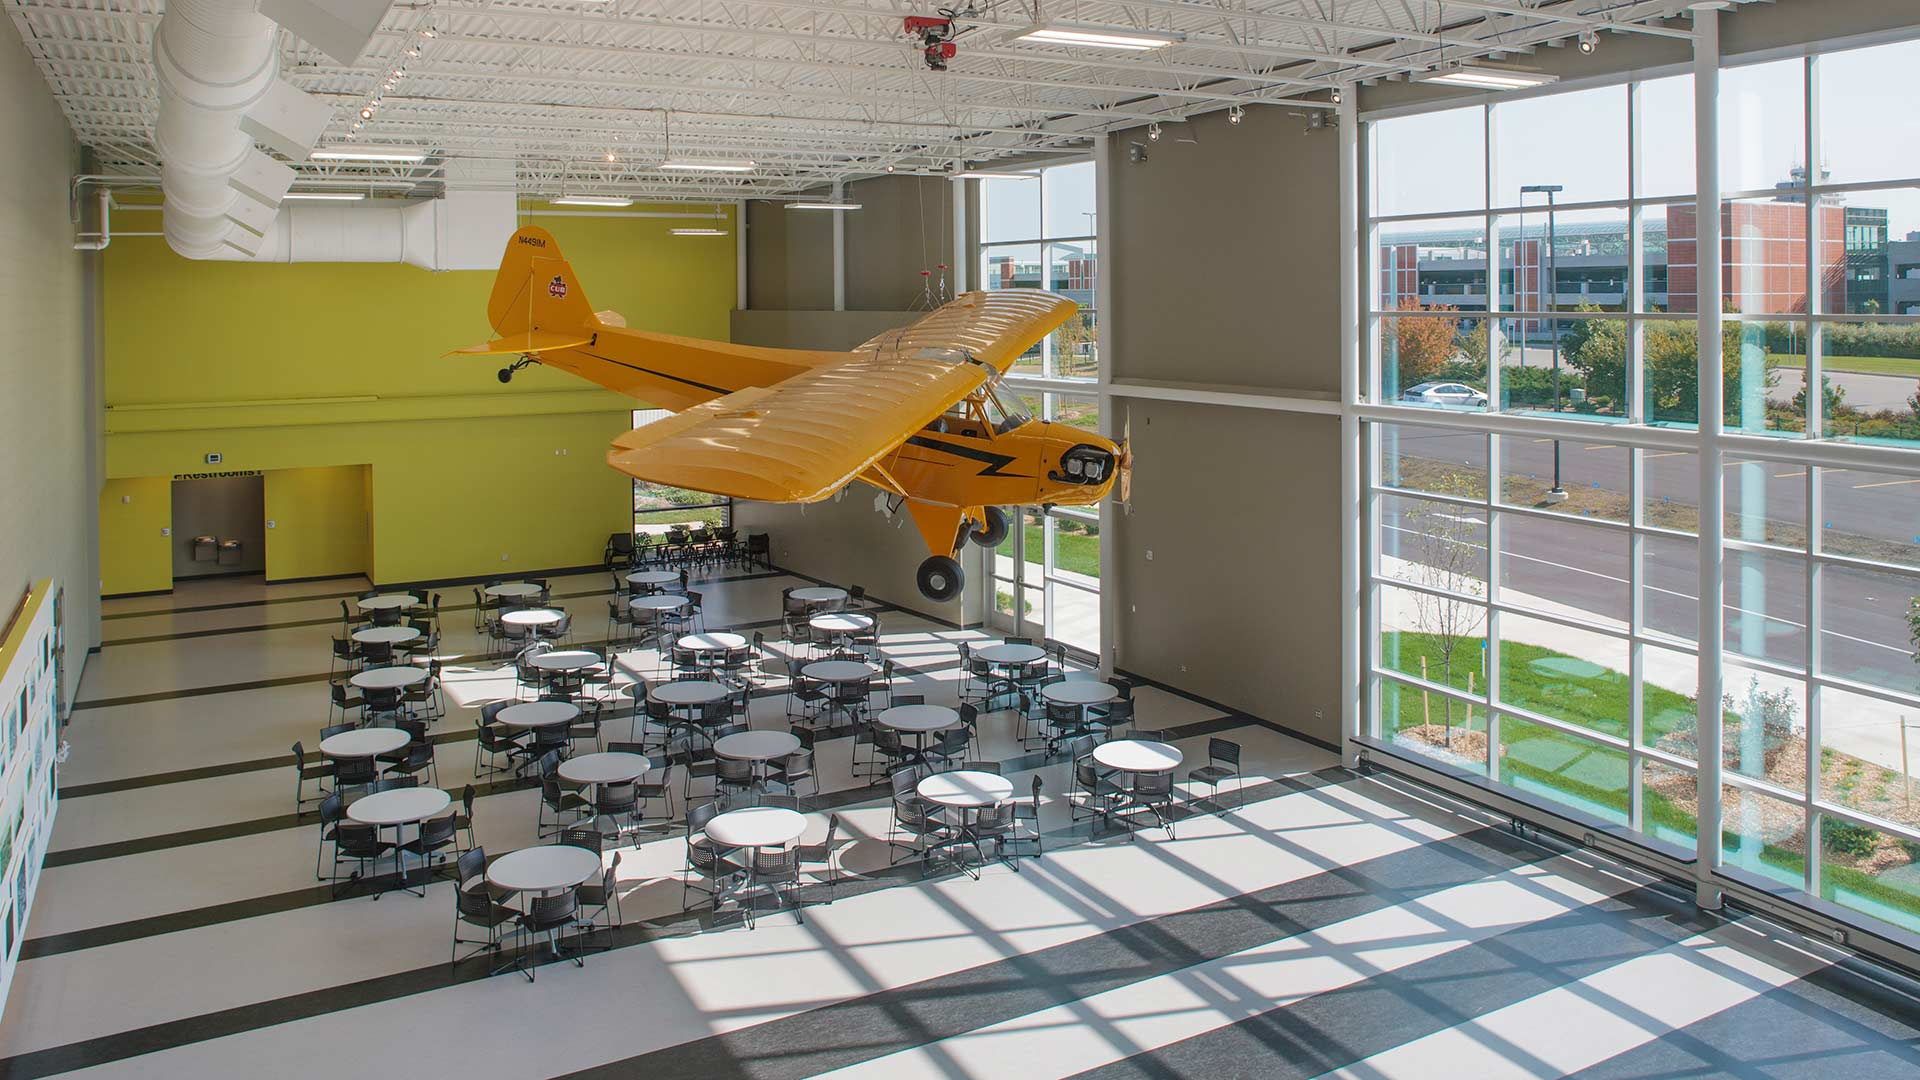 West Michigan Aviation Academy - Rockford Construction